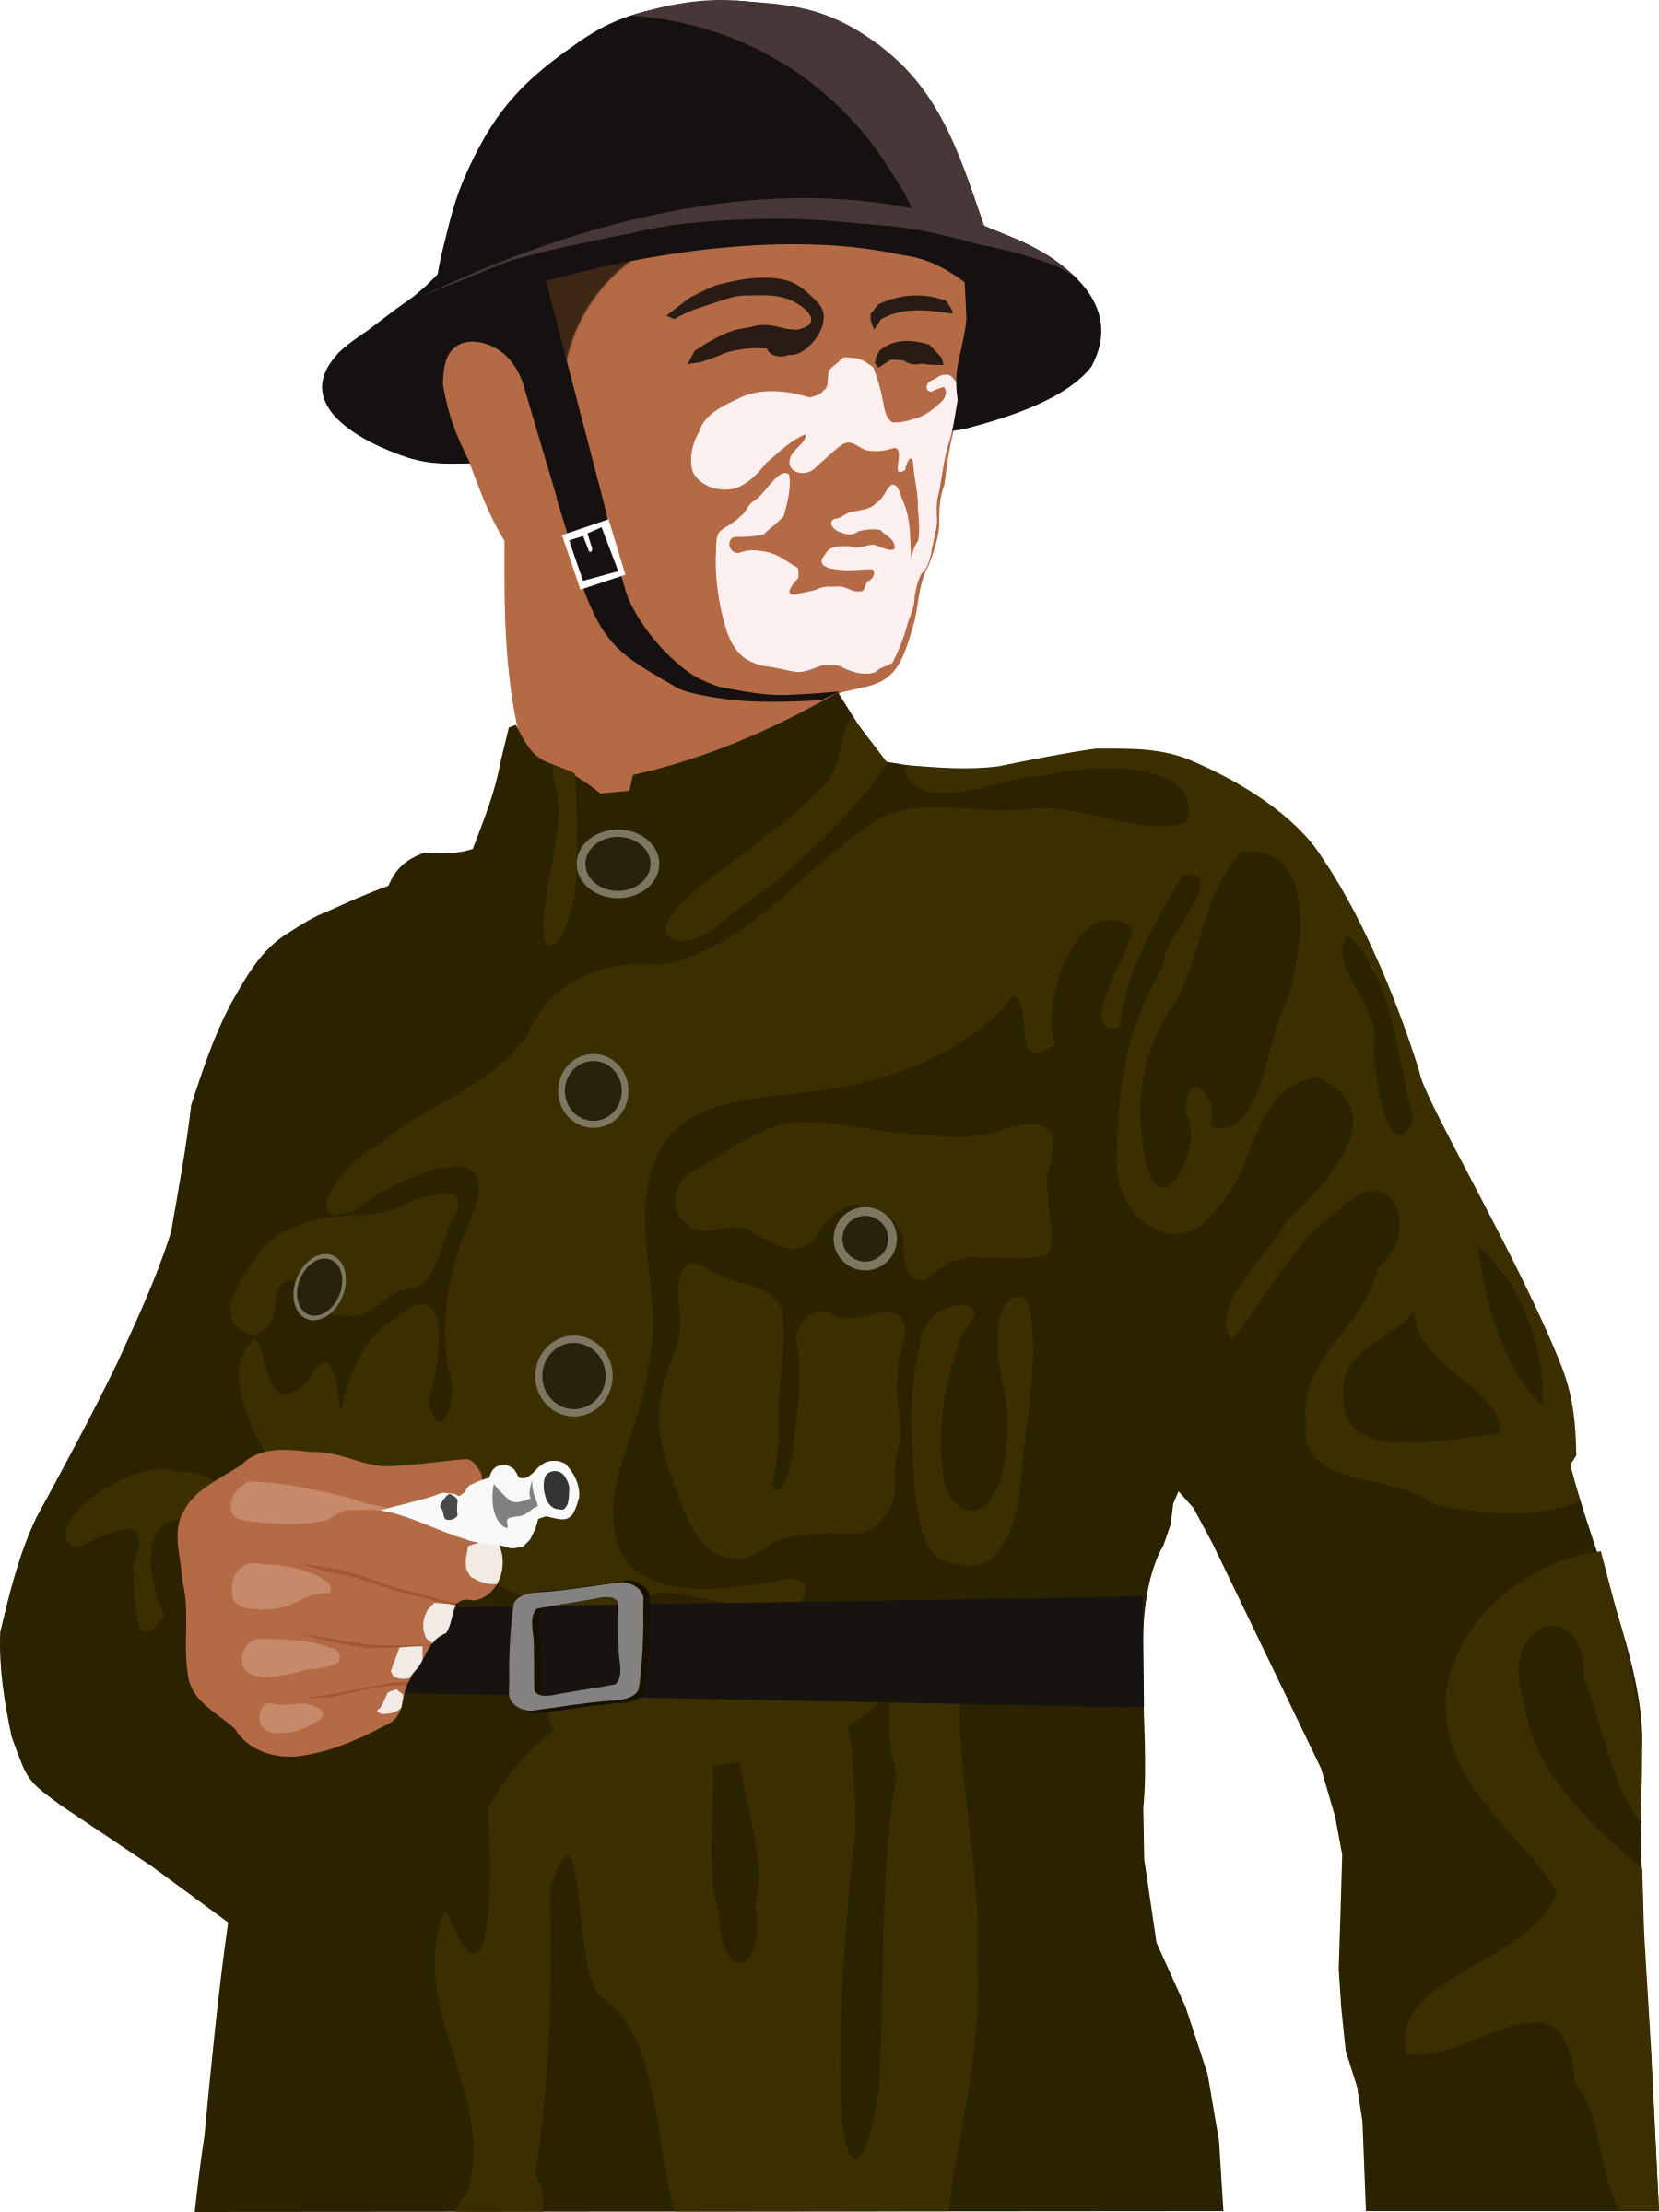 Ww2 soldier png. Ww british solider icons